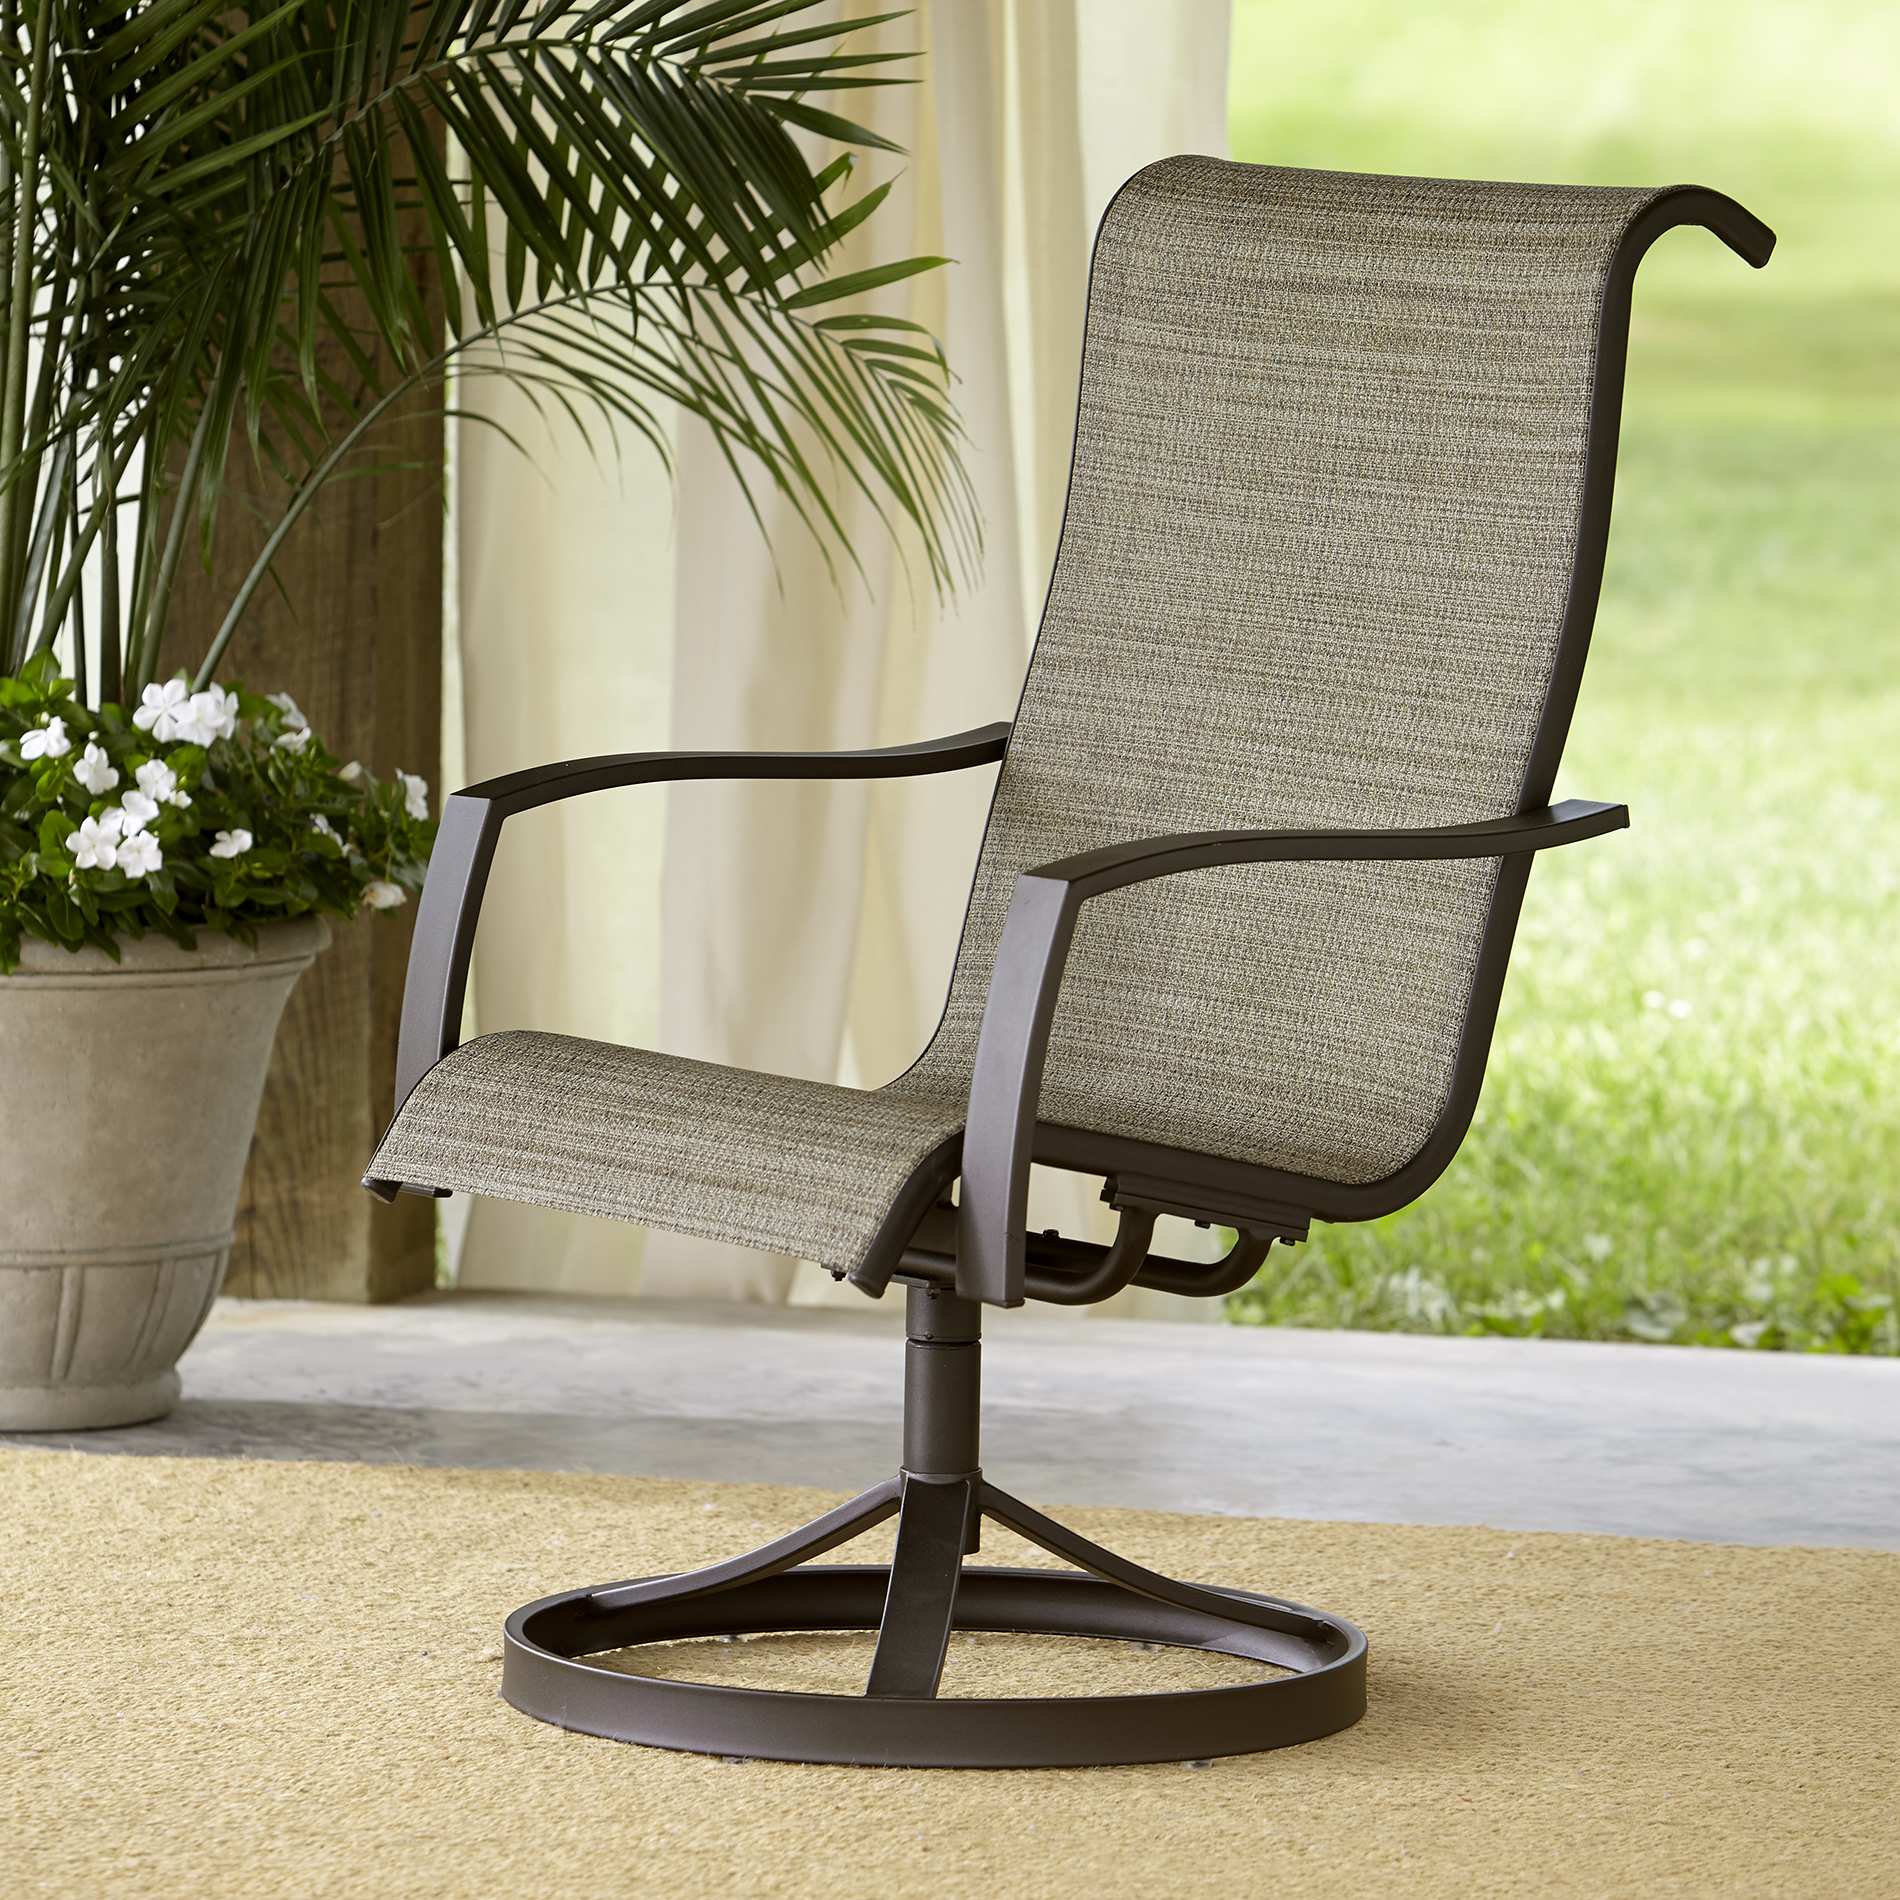 re sling patio chairs toddler folding chair with canopy garden oasis providence 1pk swivel limited